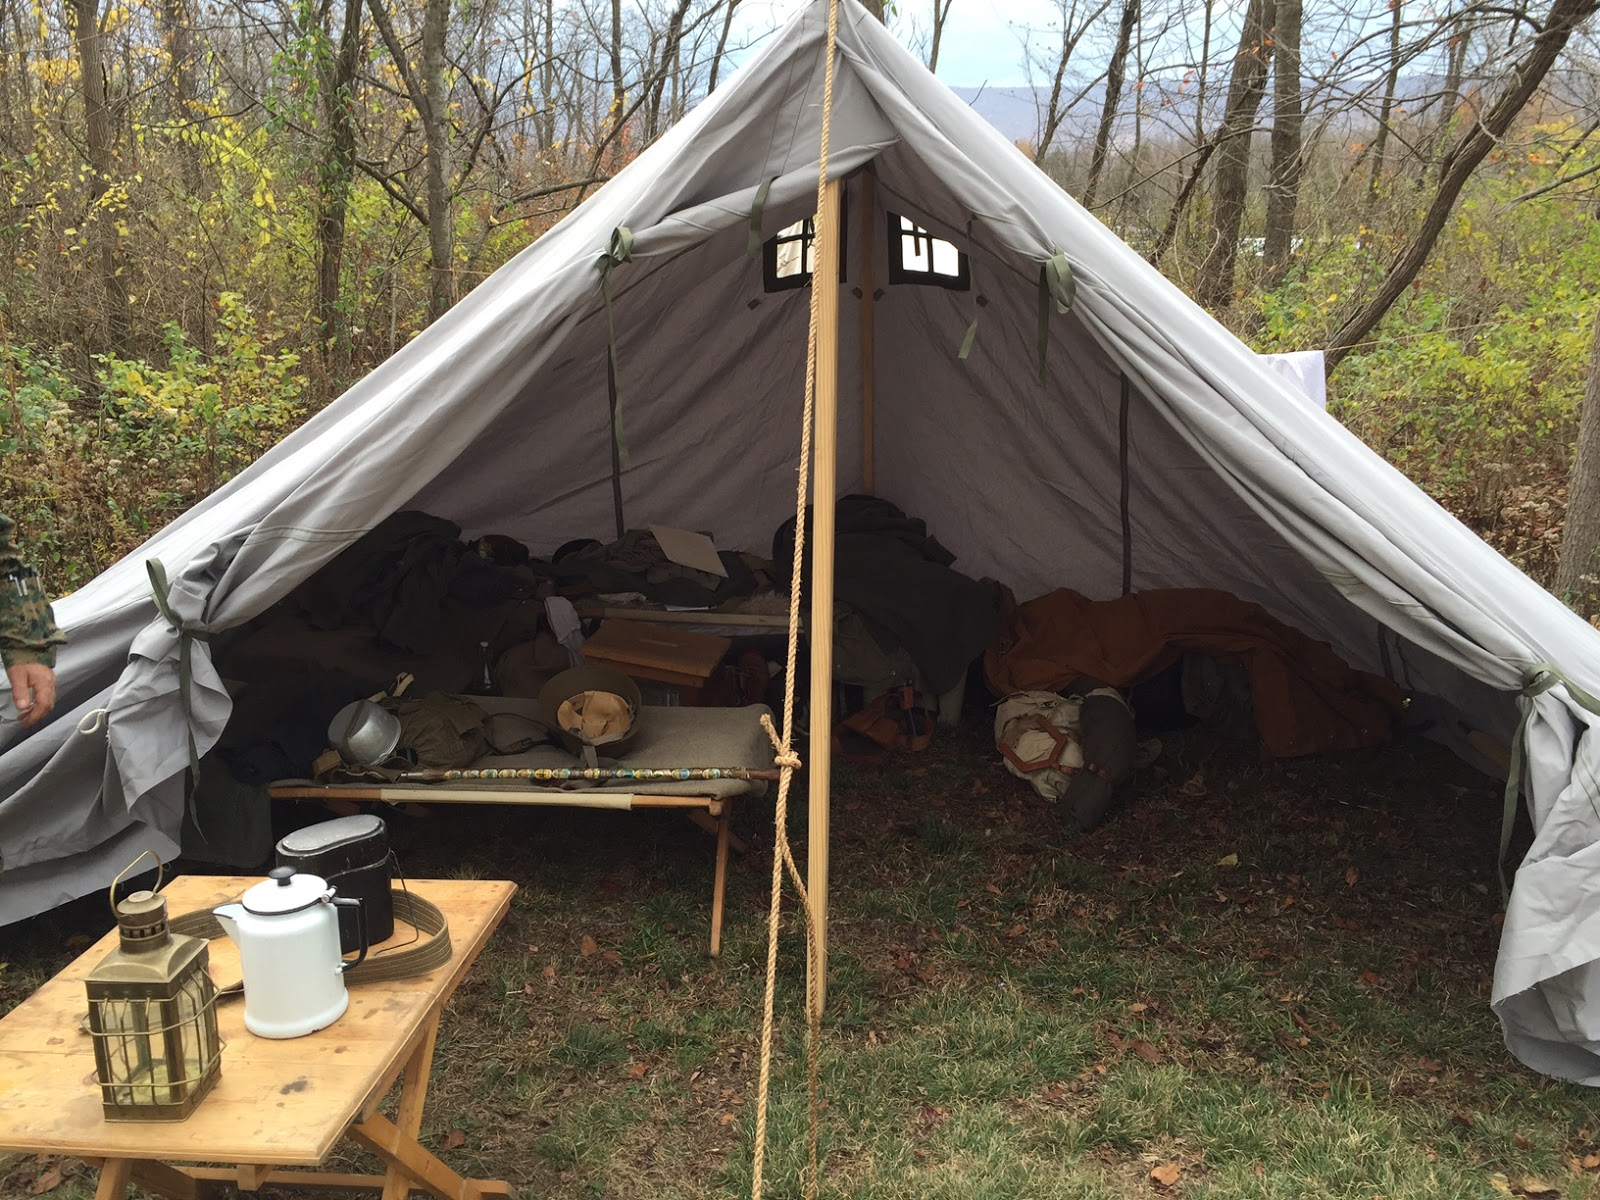 GERBIRGSNACHRICHTENZELT - Smaller Staff Moutain Tent & German WWII Tents from Armbruster | Armbruster Tent Maker